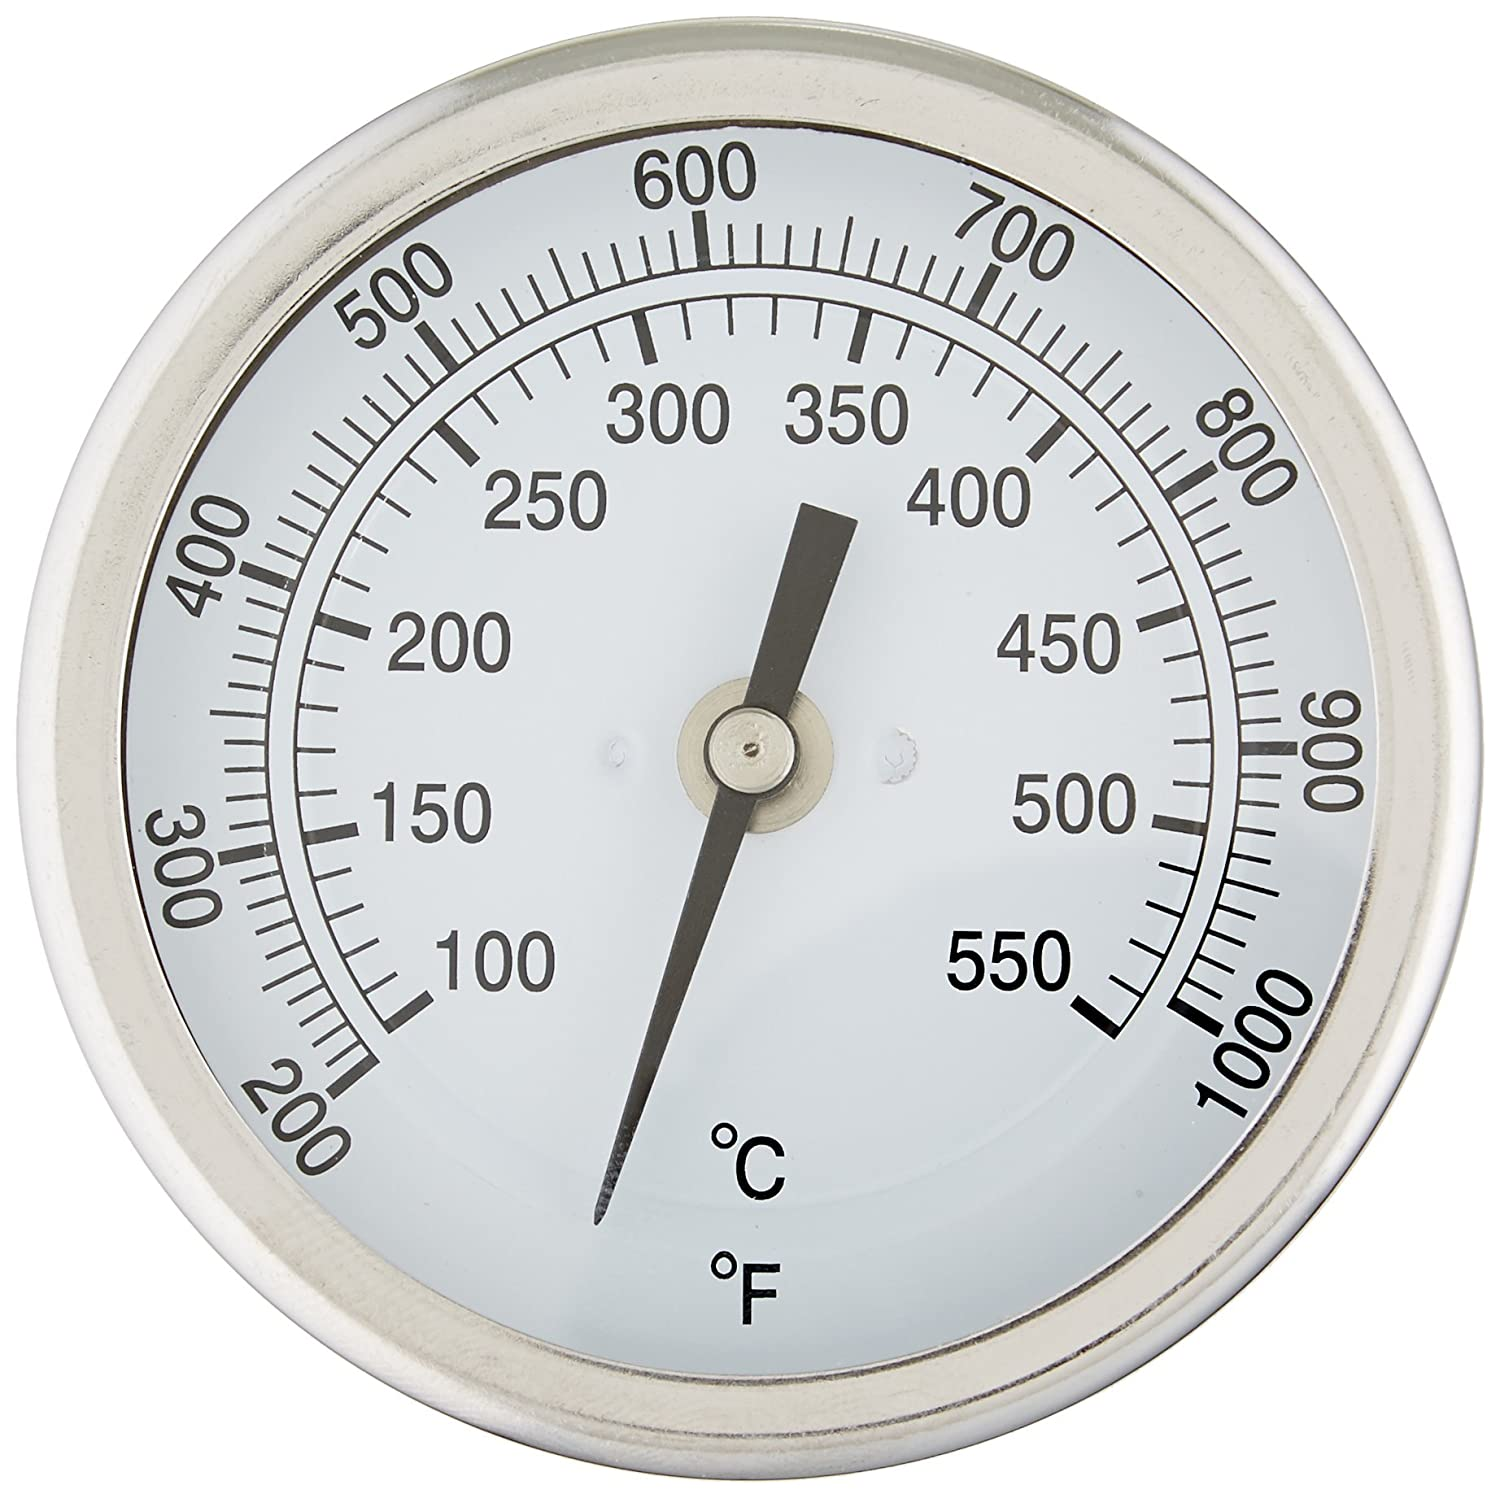 "PIC Gauge B3B9-TT 3"" Dial Size, 200/1000°F and 93/538°C, 9' Stem Length, Back Angle Connection, Stainless Steel Case, 316 Stainless Steel Stem Bimetal Thermometer 9 Stem Length PIC Gauges"